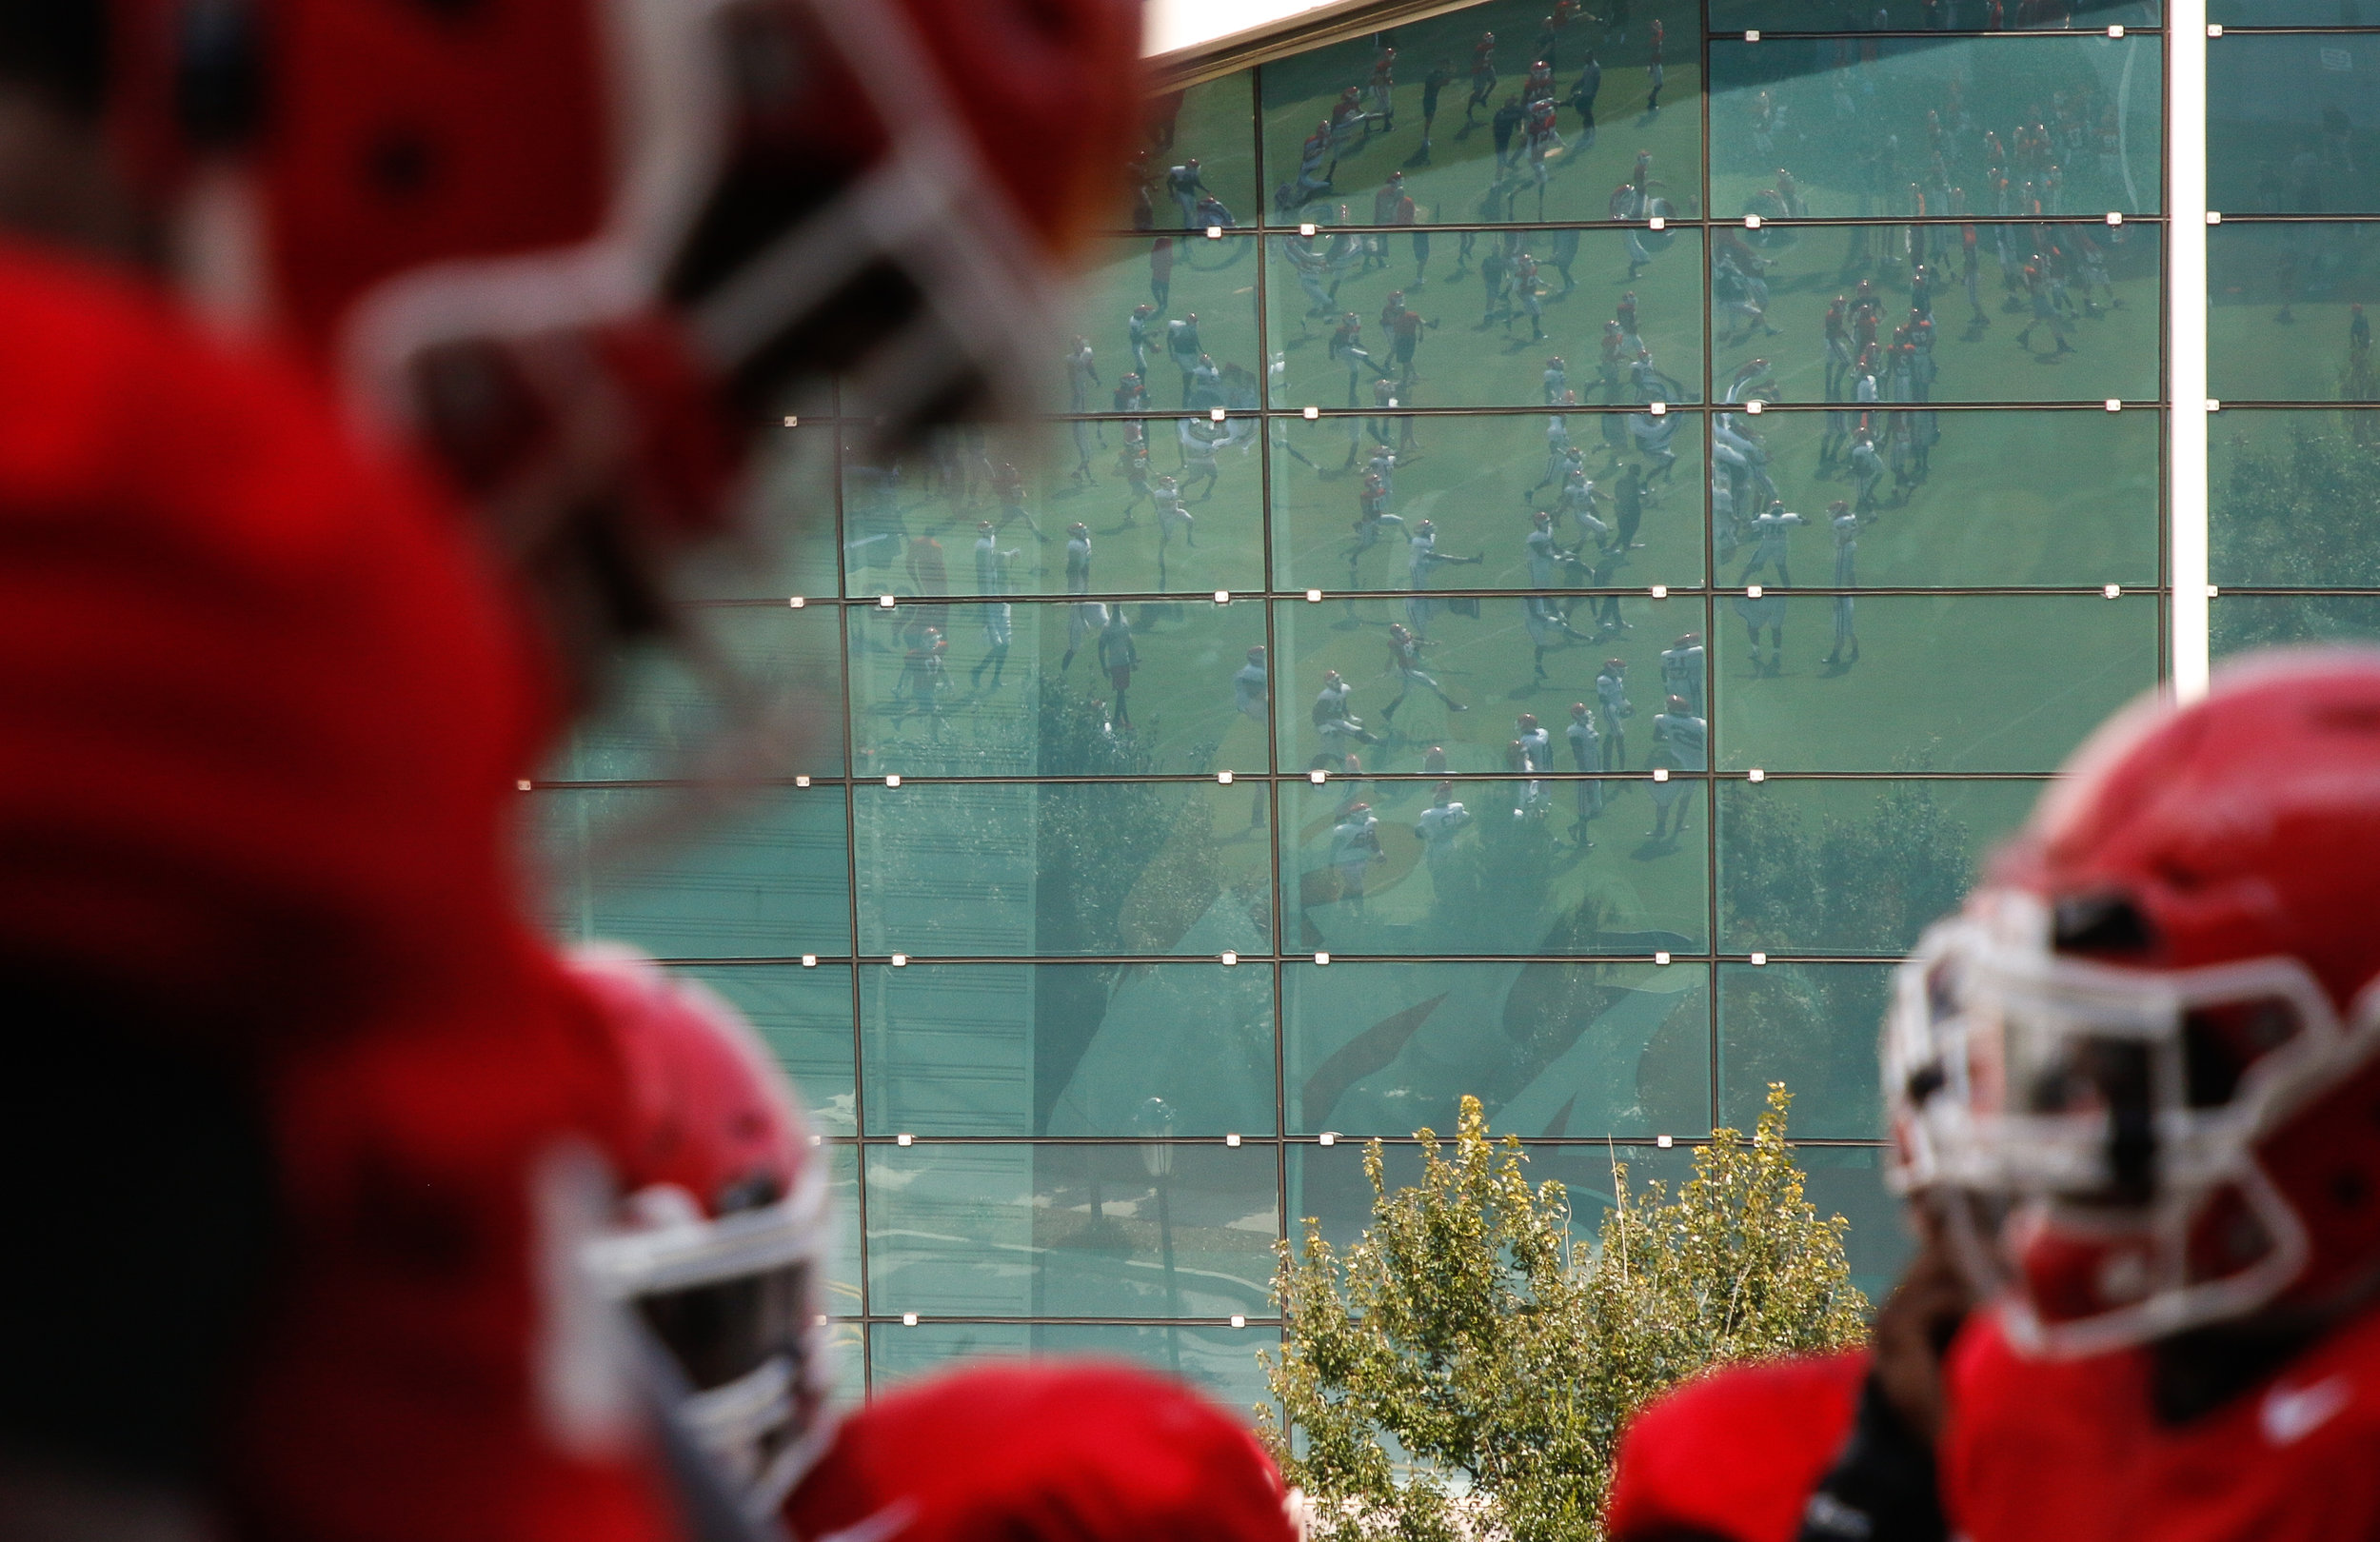 Georgia football preseason practice is reflected in the glass panels of Stegeman Coliseum in Athens, Ga., on Thursday, August 16, 2018.